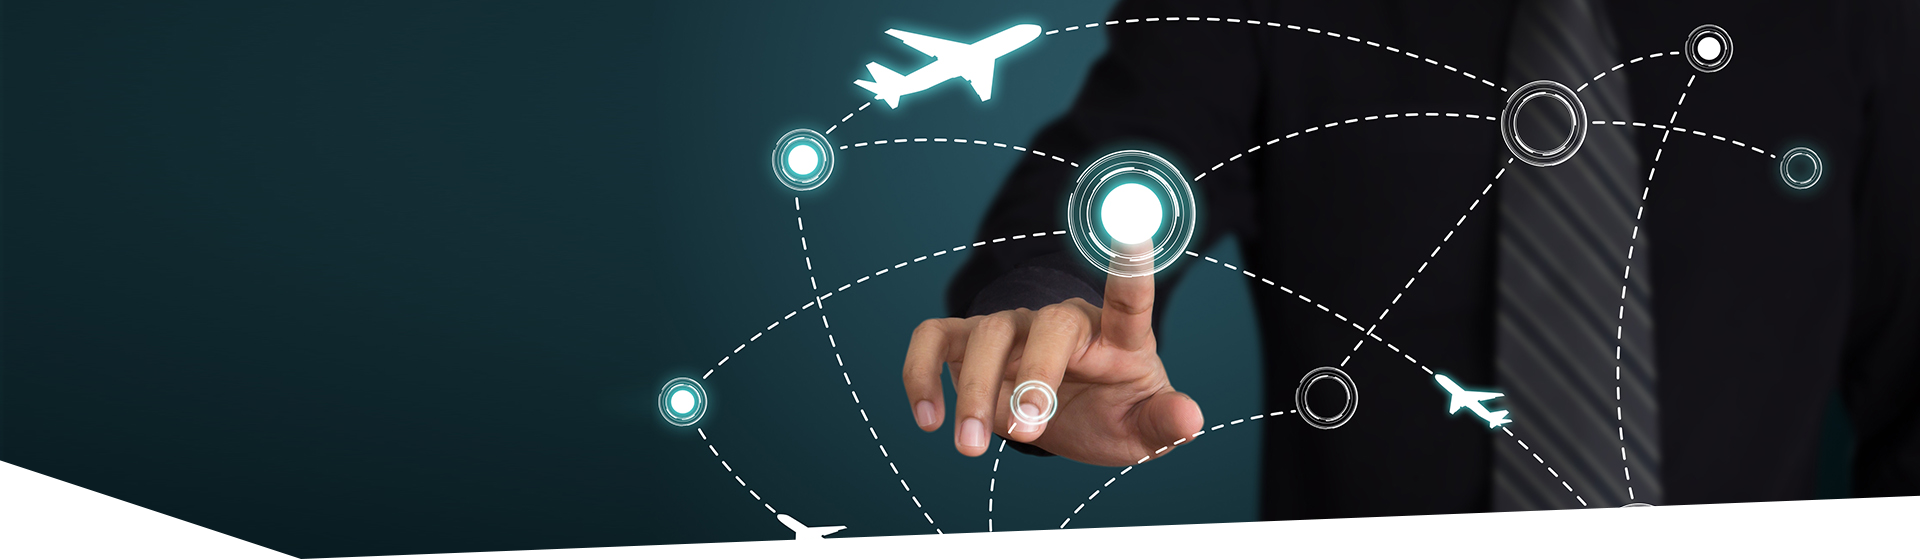 Turbulence-free PSS Migration to Drive Connected Operations